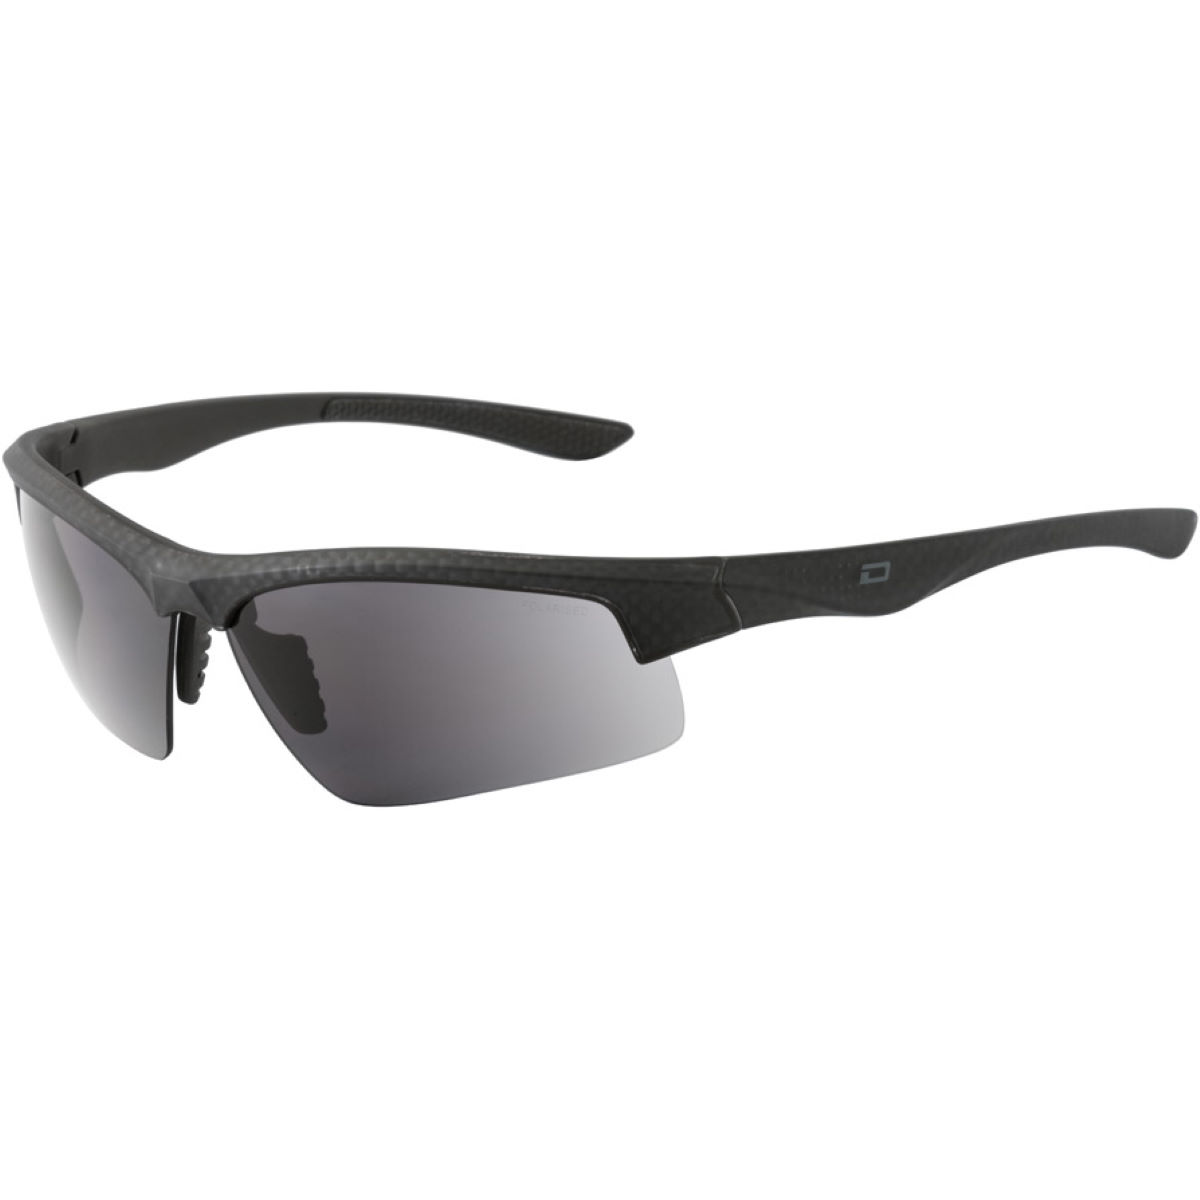 Dirty Dog Hub Polarised Sunglasses - Gafas de sol